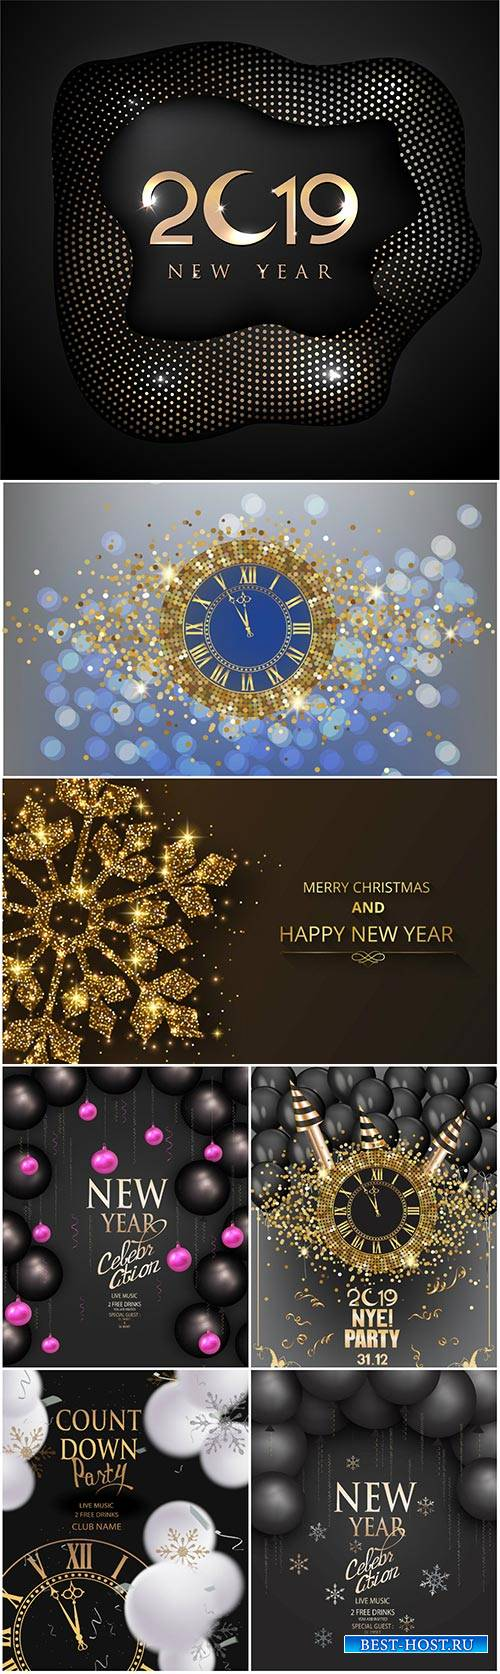 Luxury Christmas background vector 2019